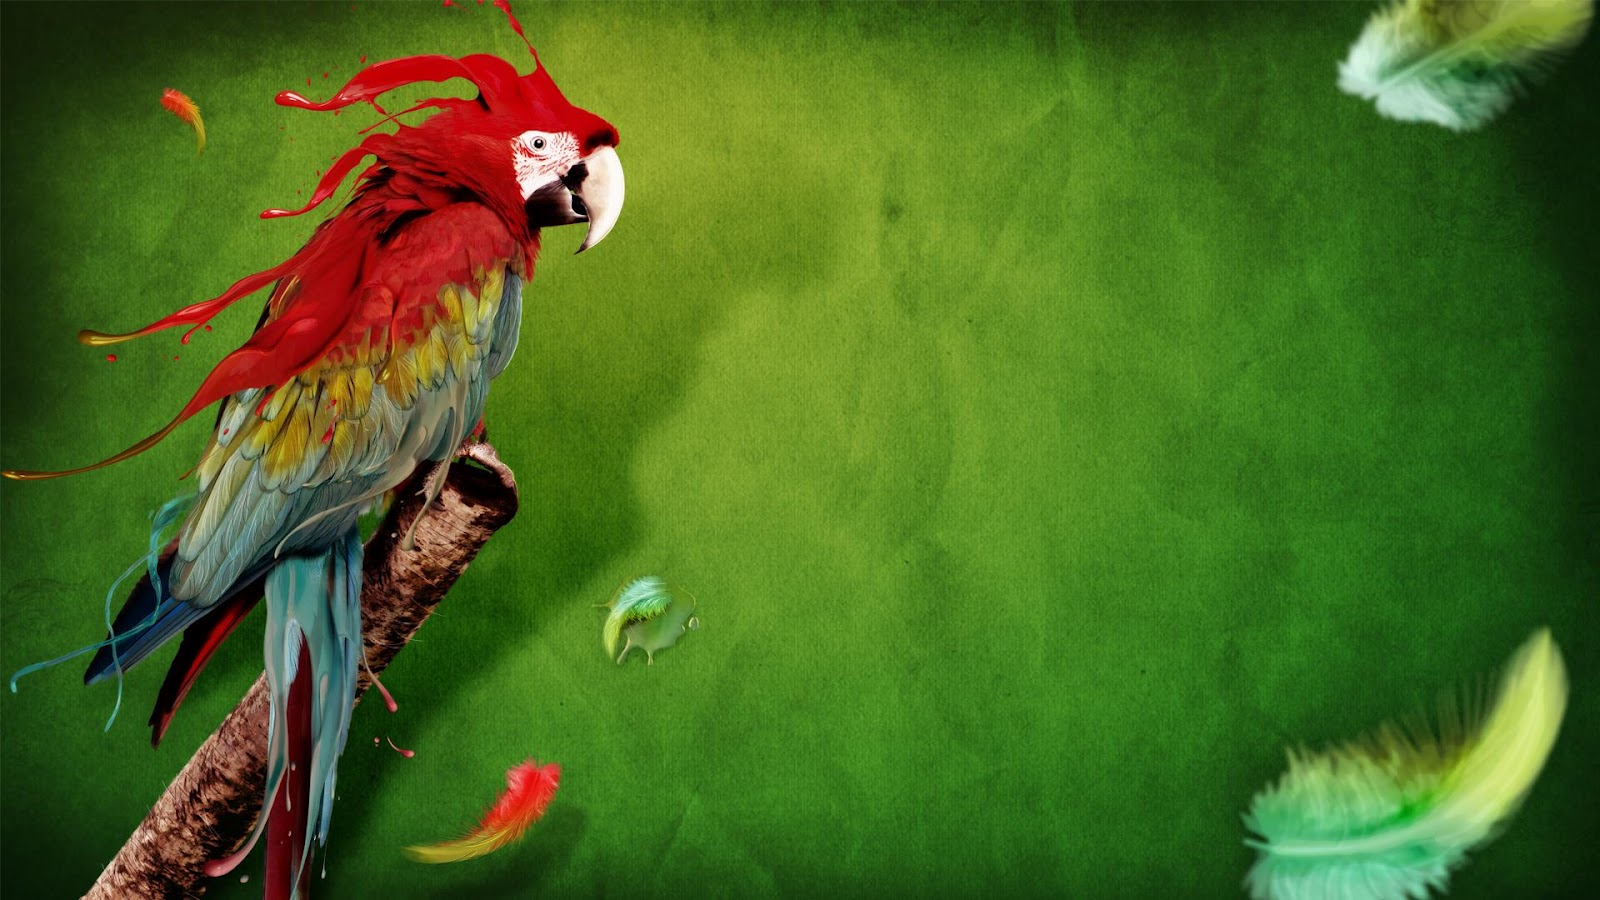 Parrot Full HD Wallpapers, Parrot Wallpapers, Parrot HD